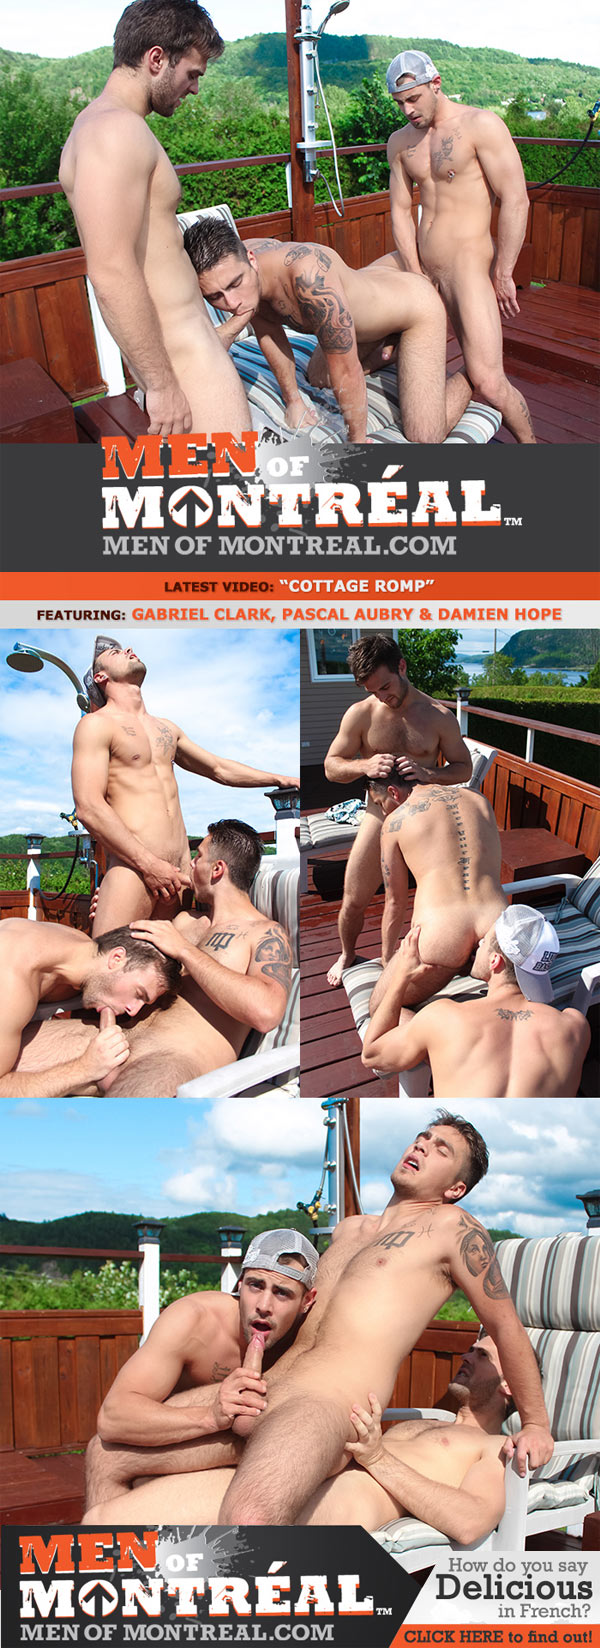 Cottage Romp (Gabriel Clark, Pascal Aubry and Damien Hope) at MenOfMontreal